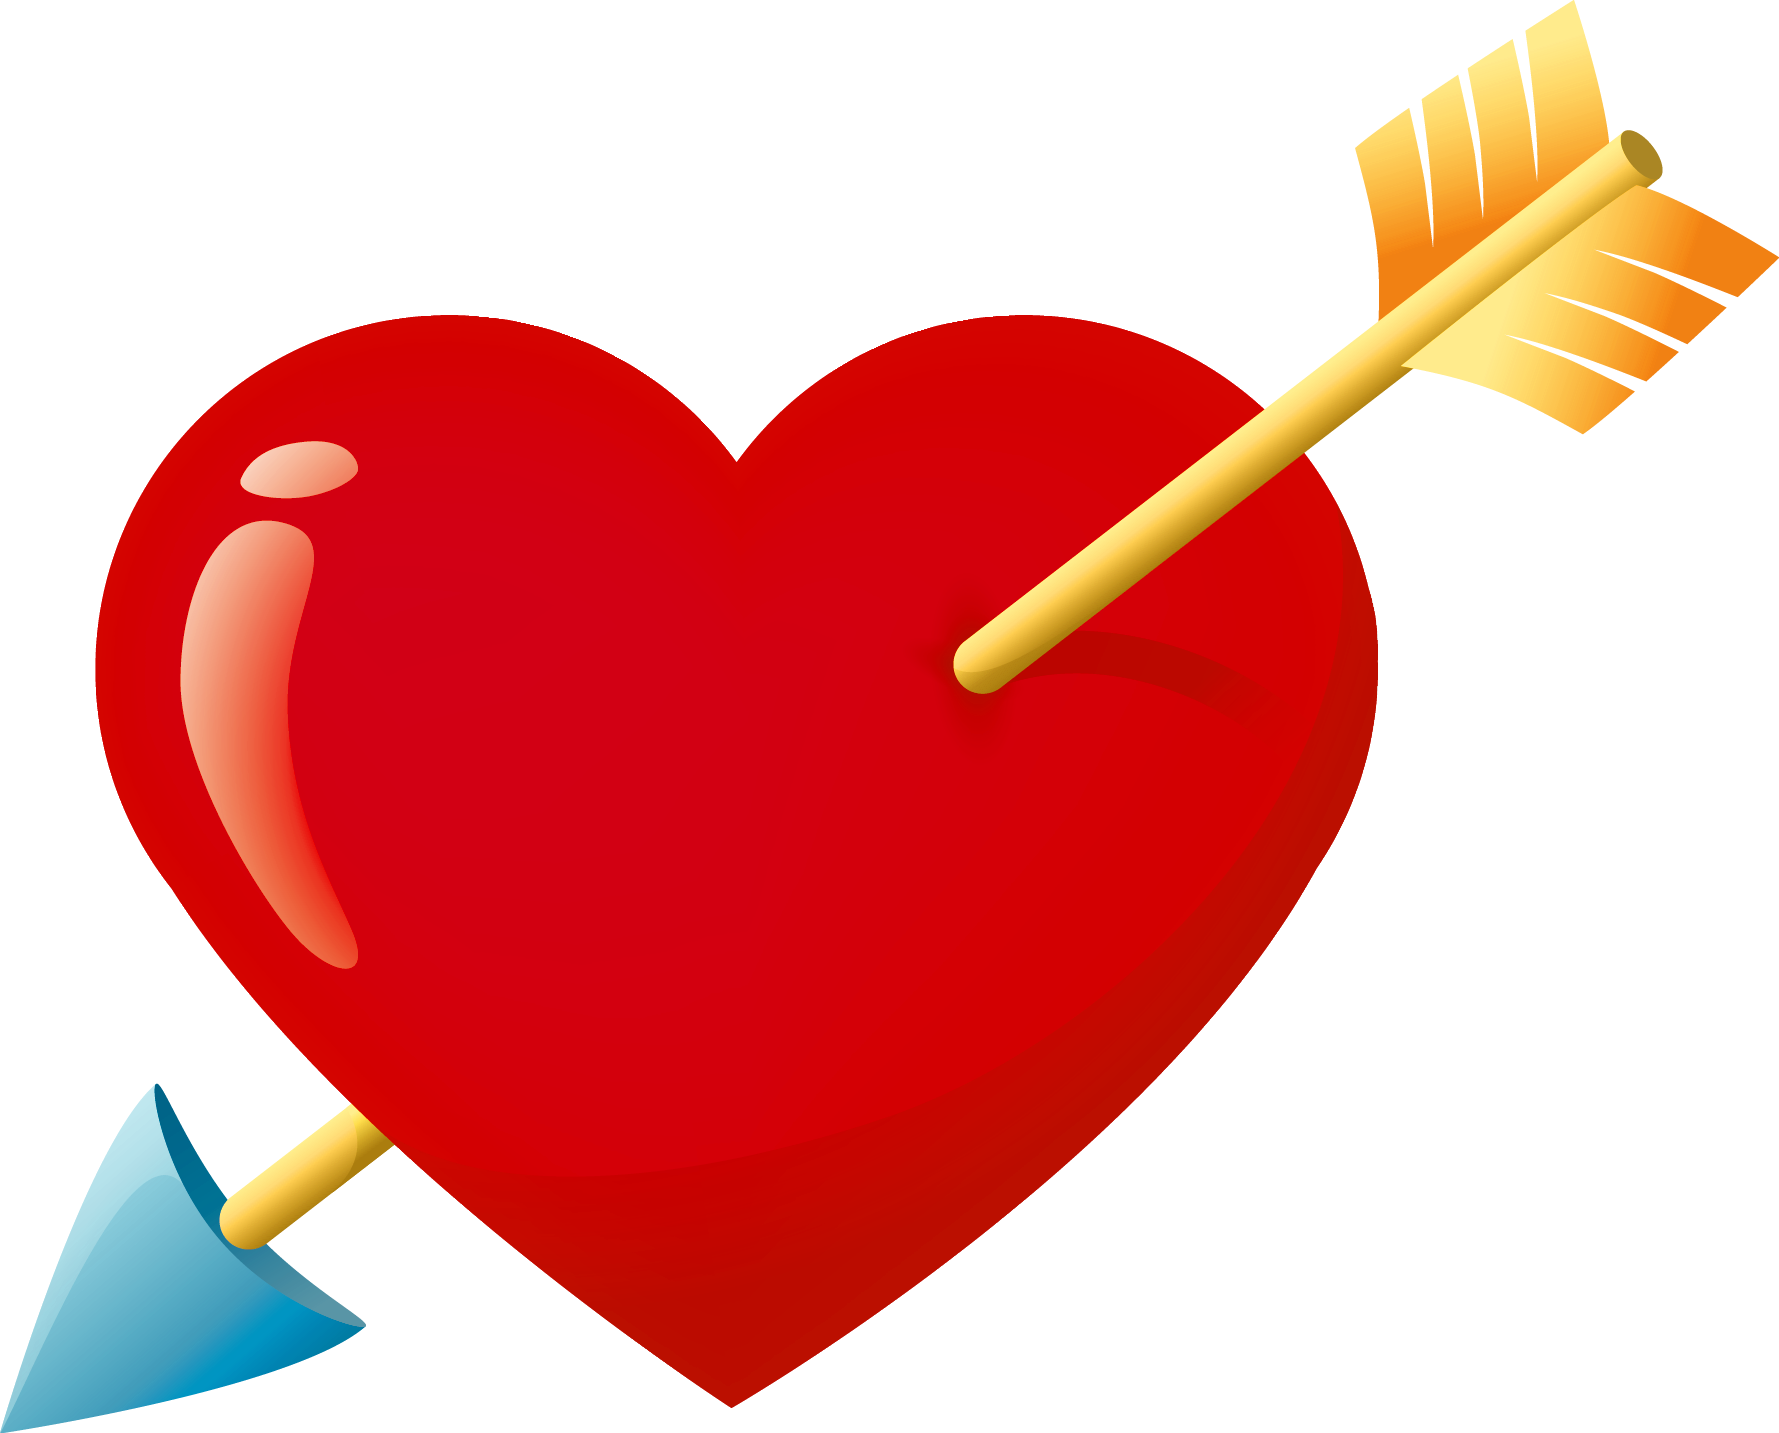 Free Heart With Arrow, Download Free Clip Art, Free Clip Art.